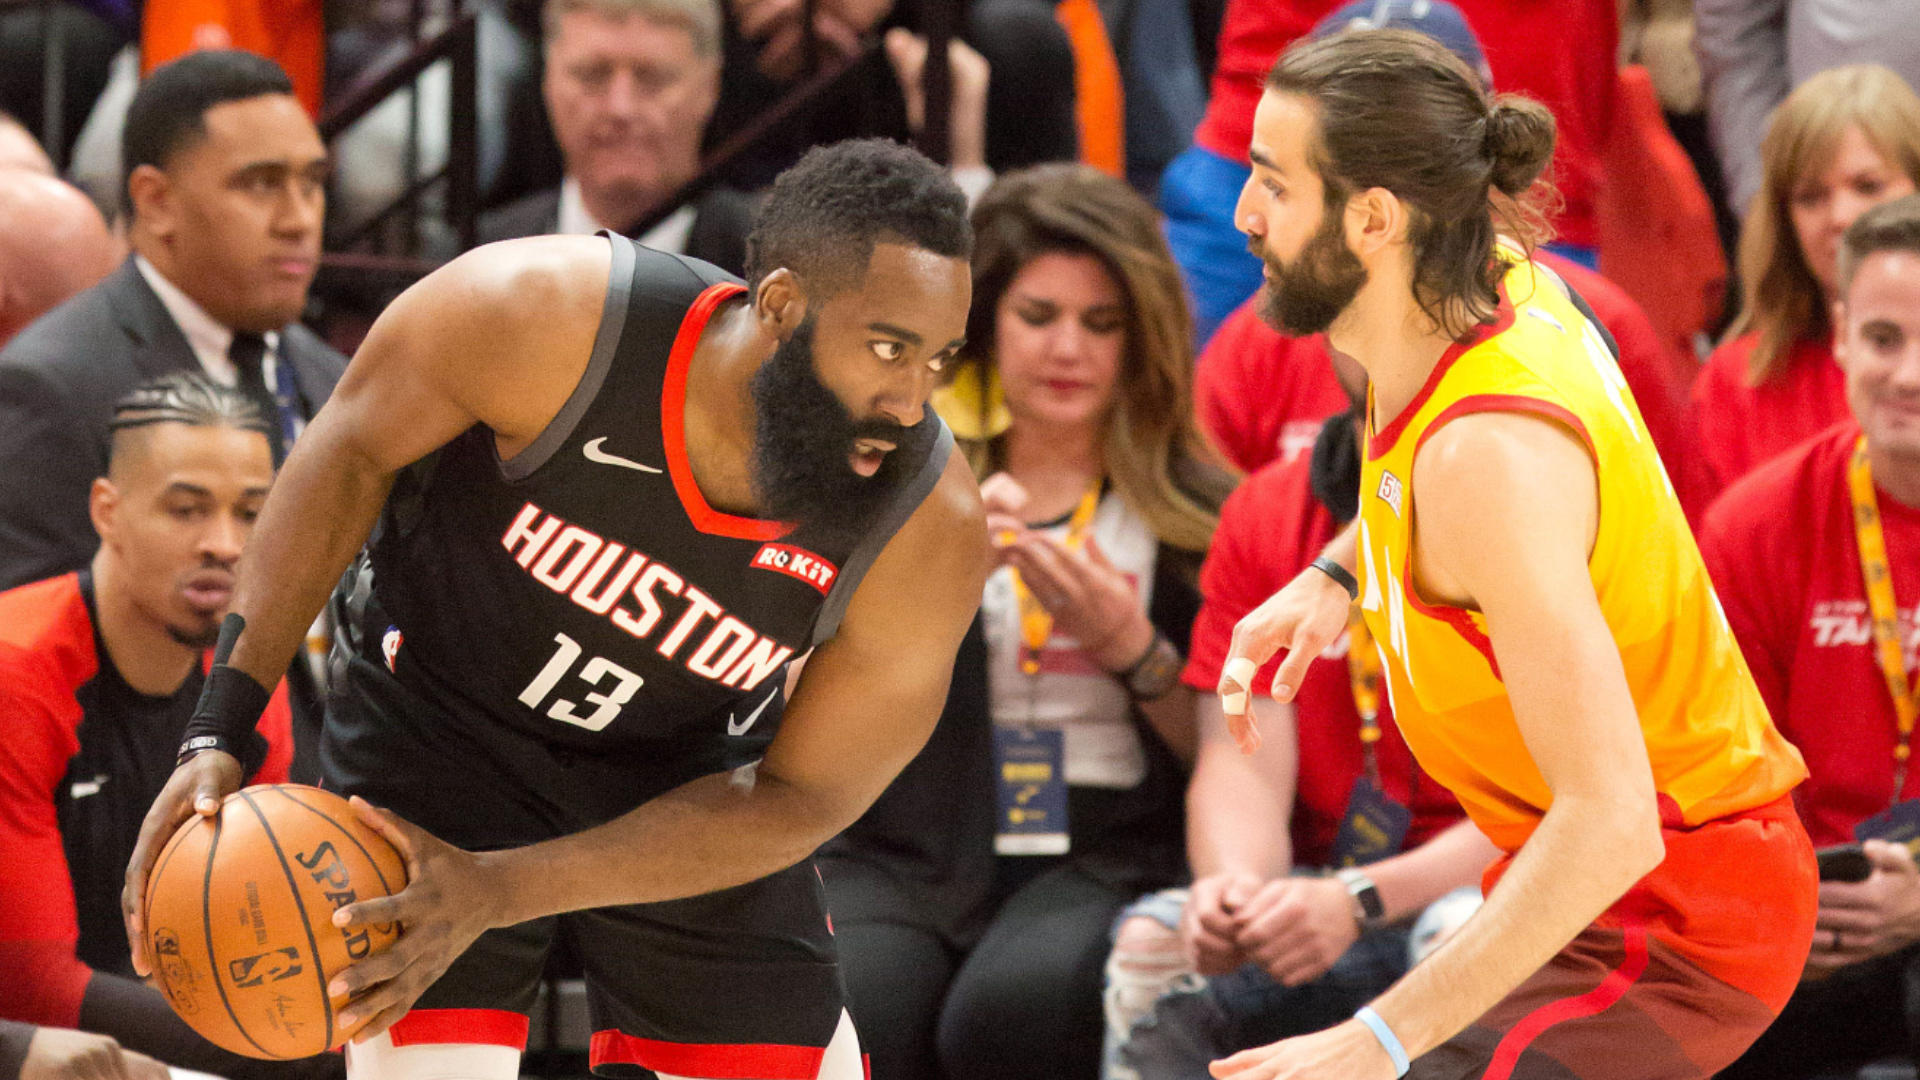 NBA playoffs scores, highlights: Bucks, Rockets look for series sweeps while Pistons, Jazz try to stave off elimination